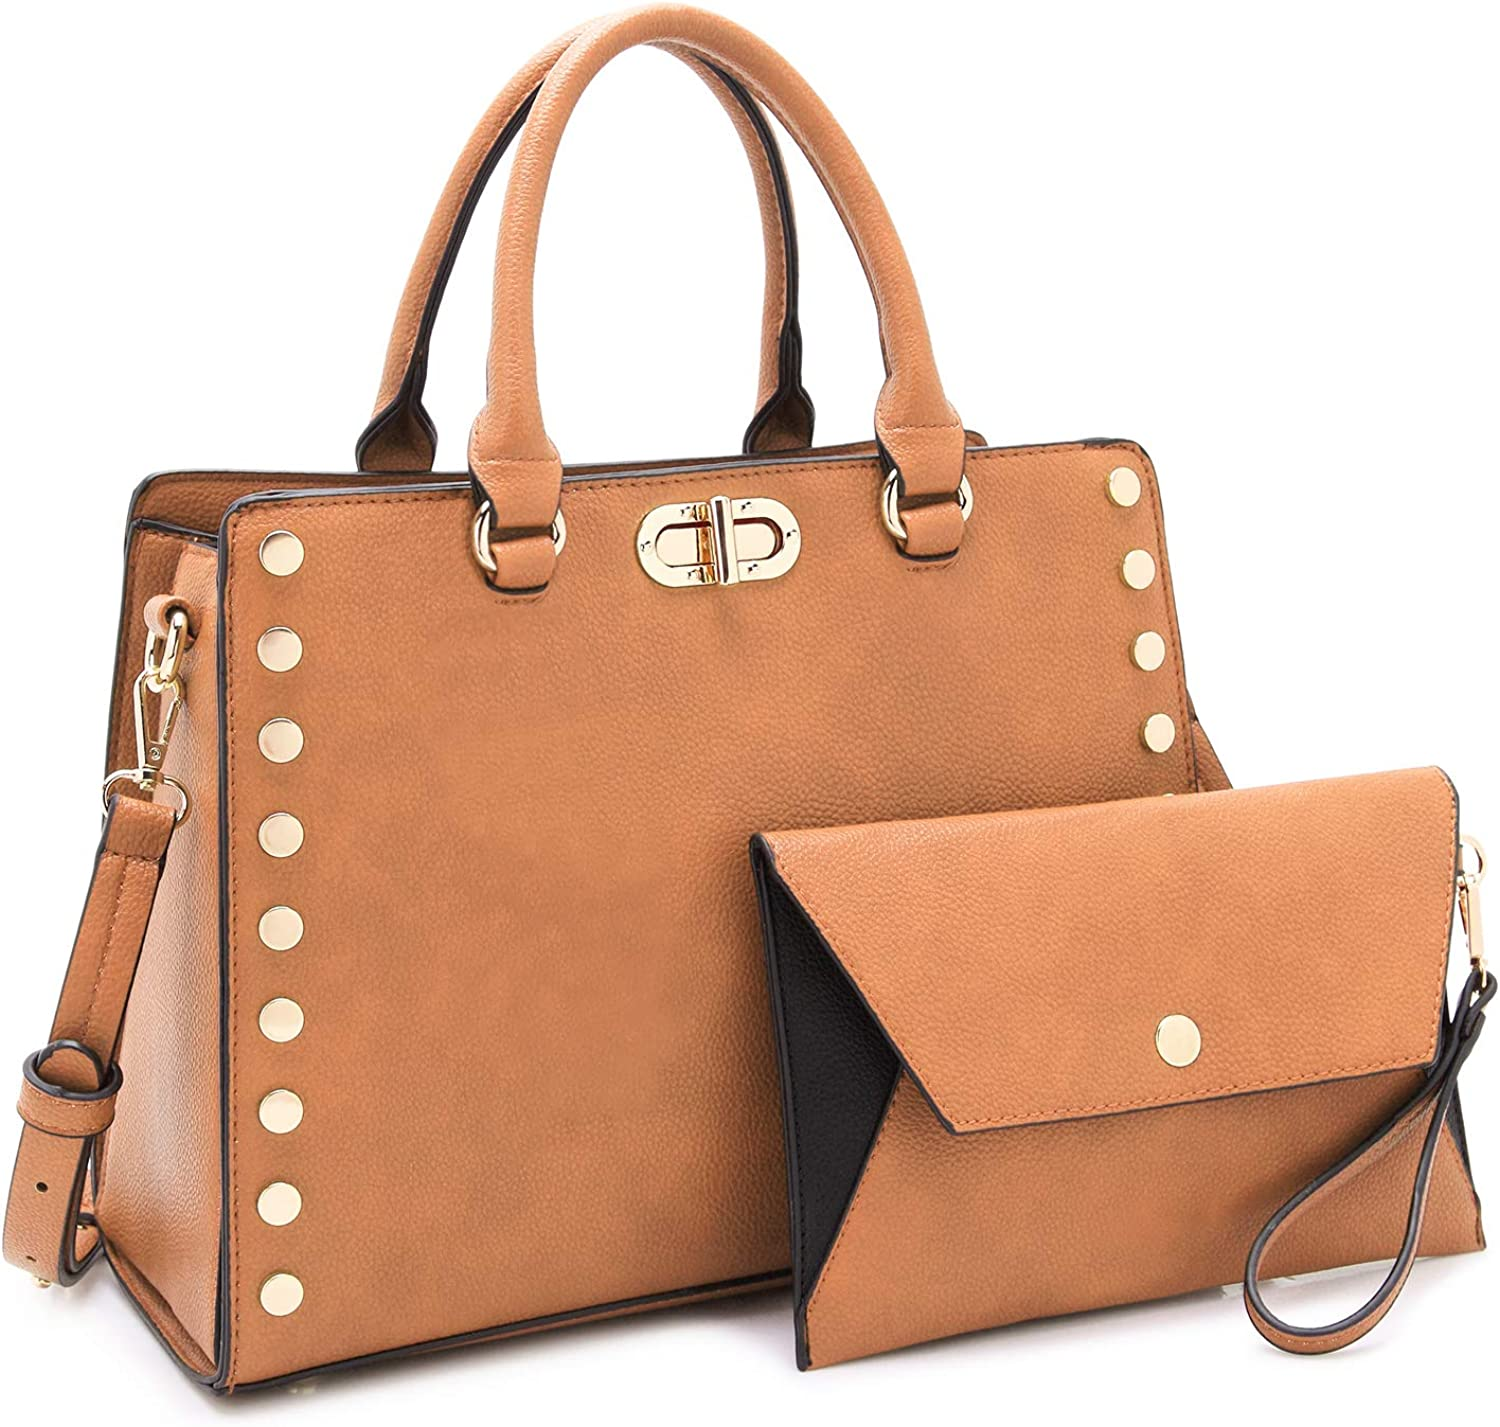 Dasein Purses and Handbags for Opening large release sale Women Handle Bags Sho Satchel Popular Top